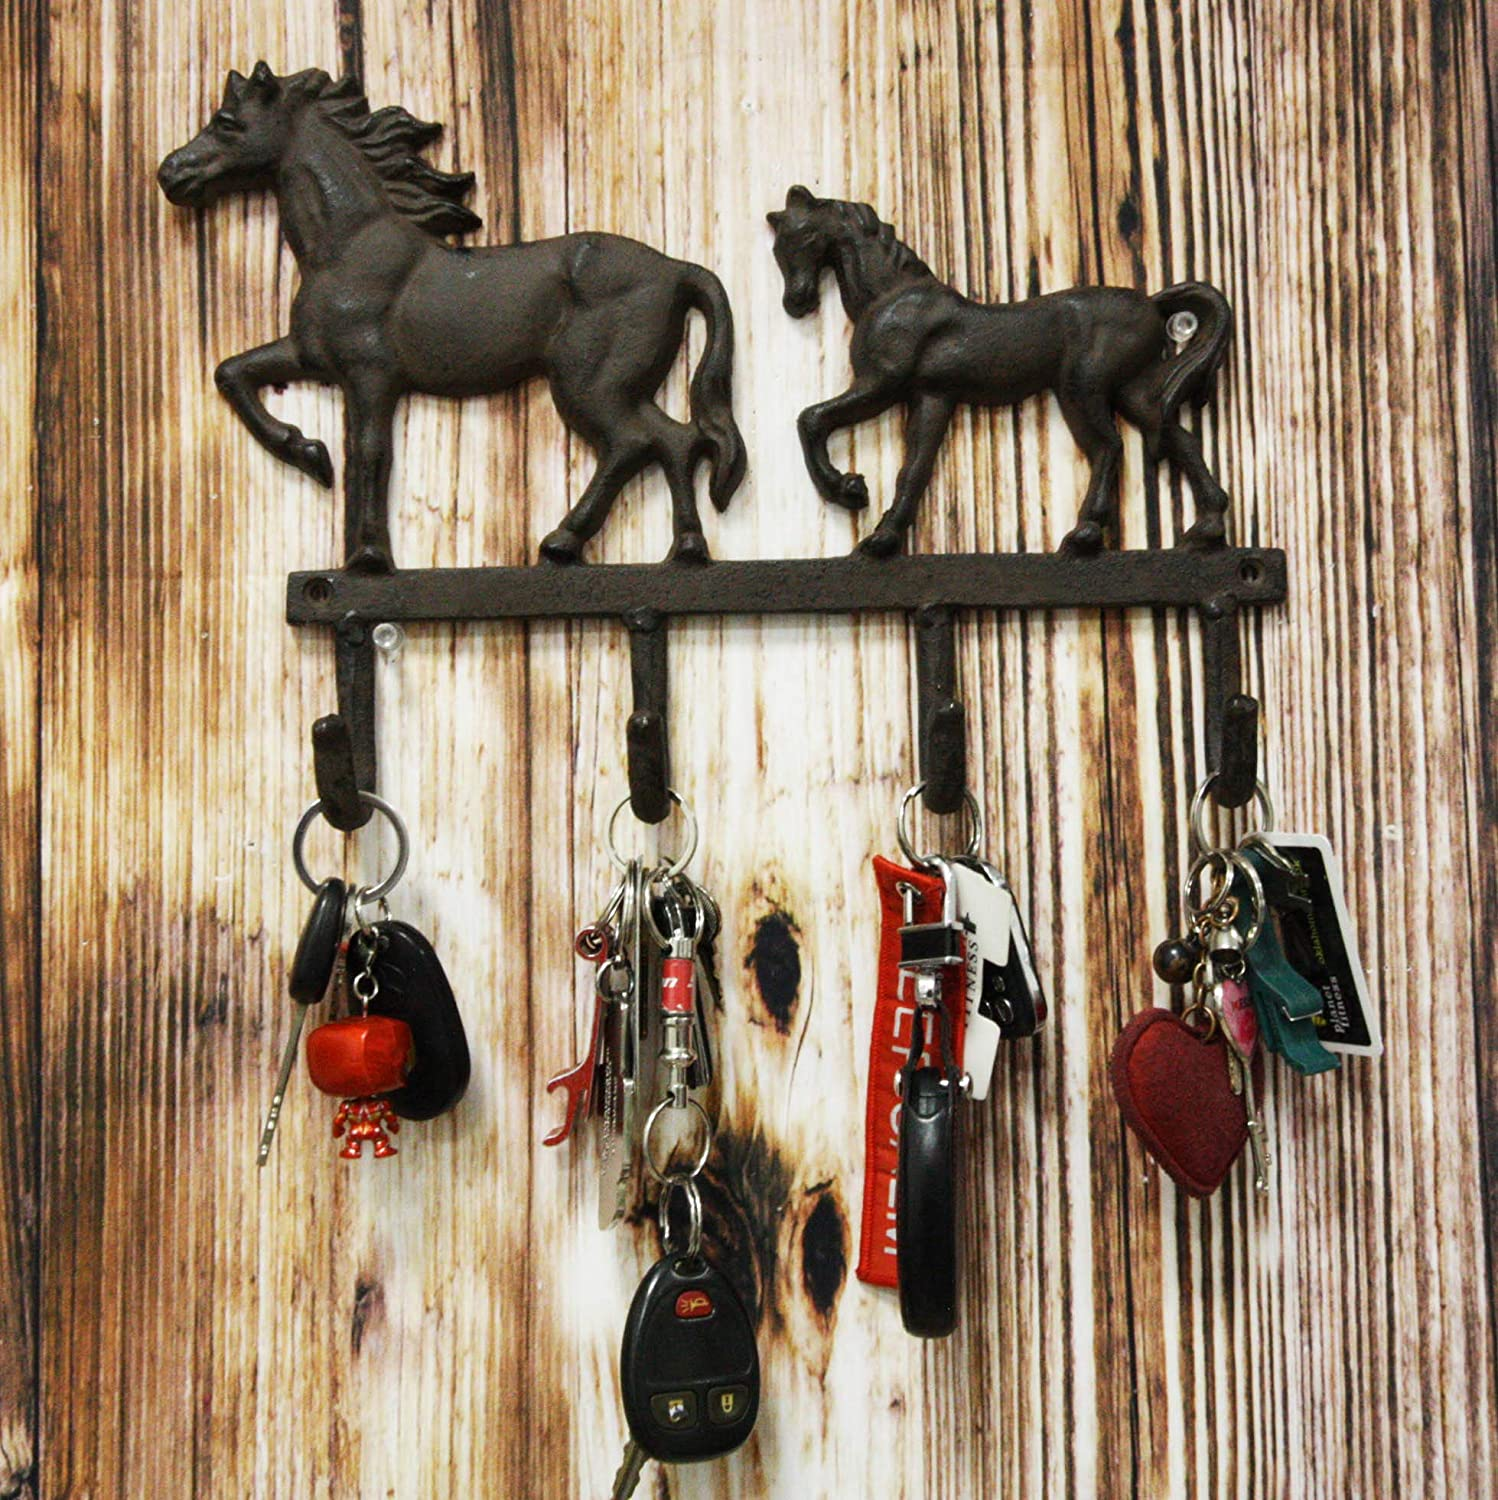 Ebros Cast Iron Rustic Western Country Farm Ranking TOP3 55% OFF With Horse Coat Foal